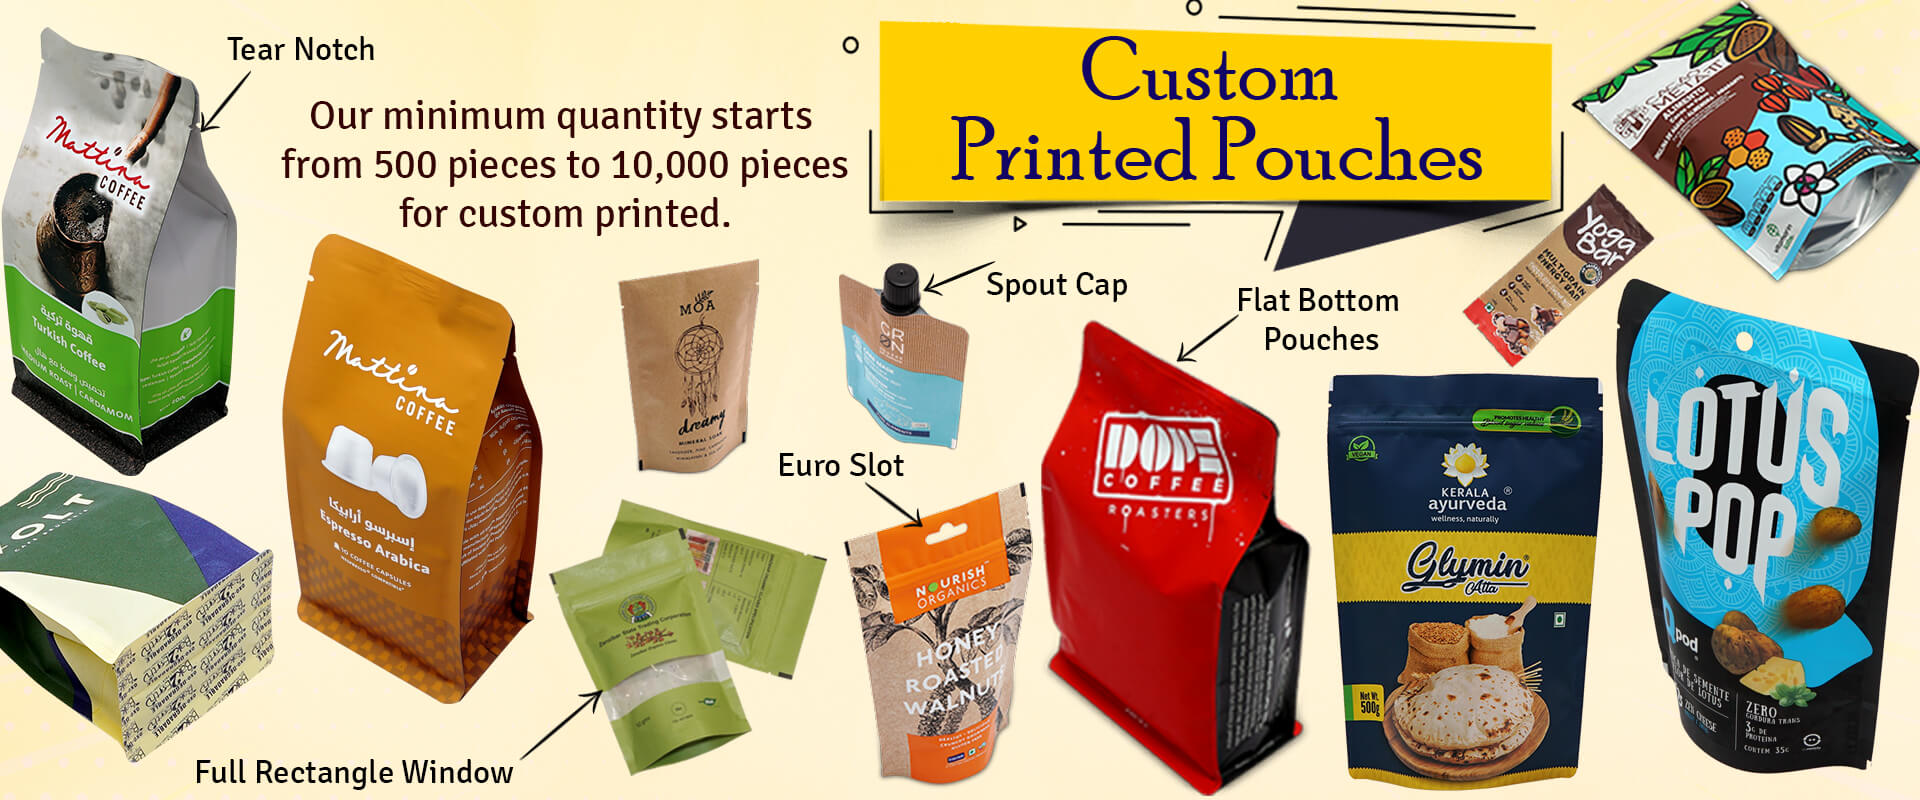 Custom Printed Pouches